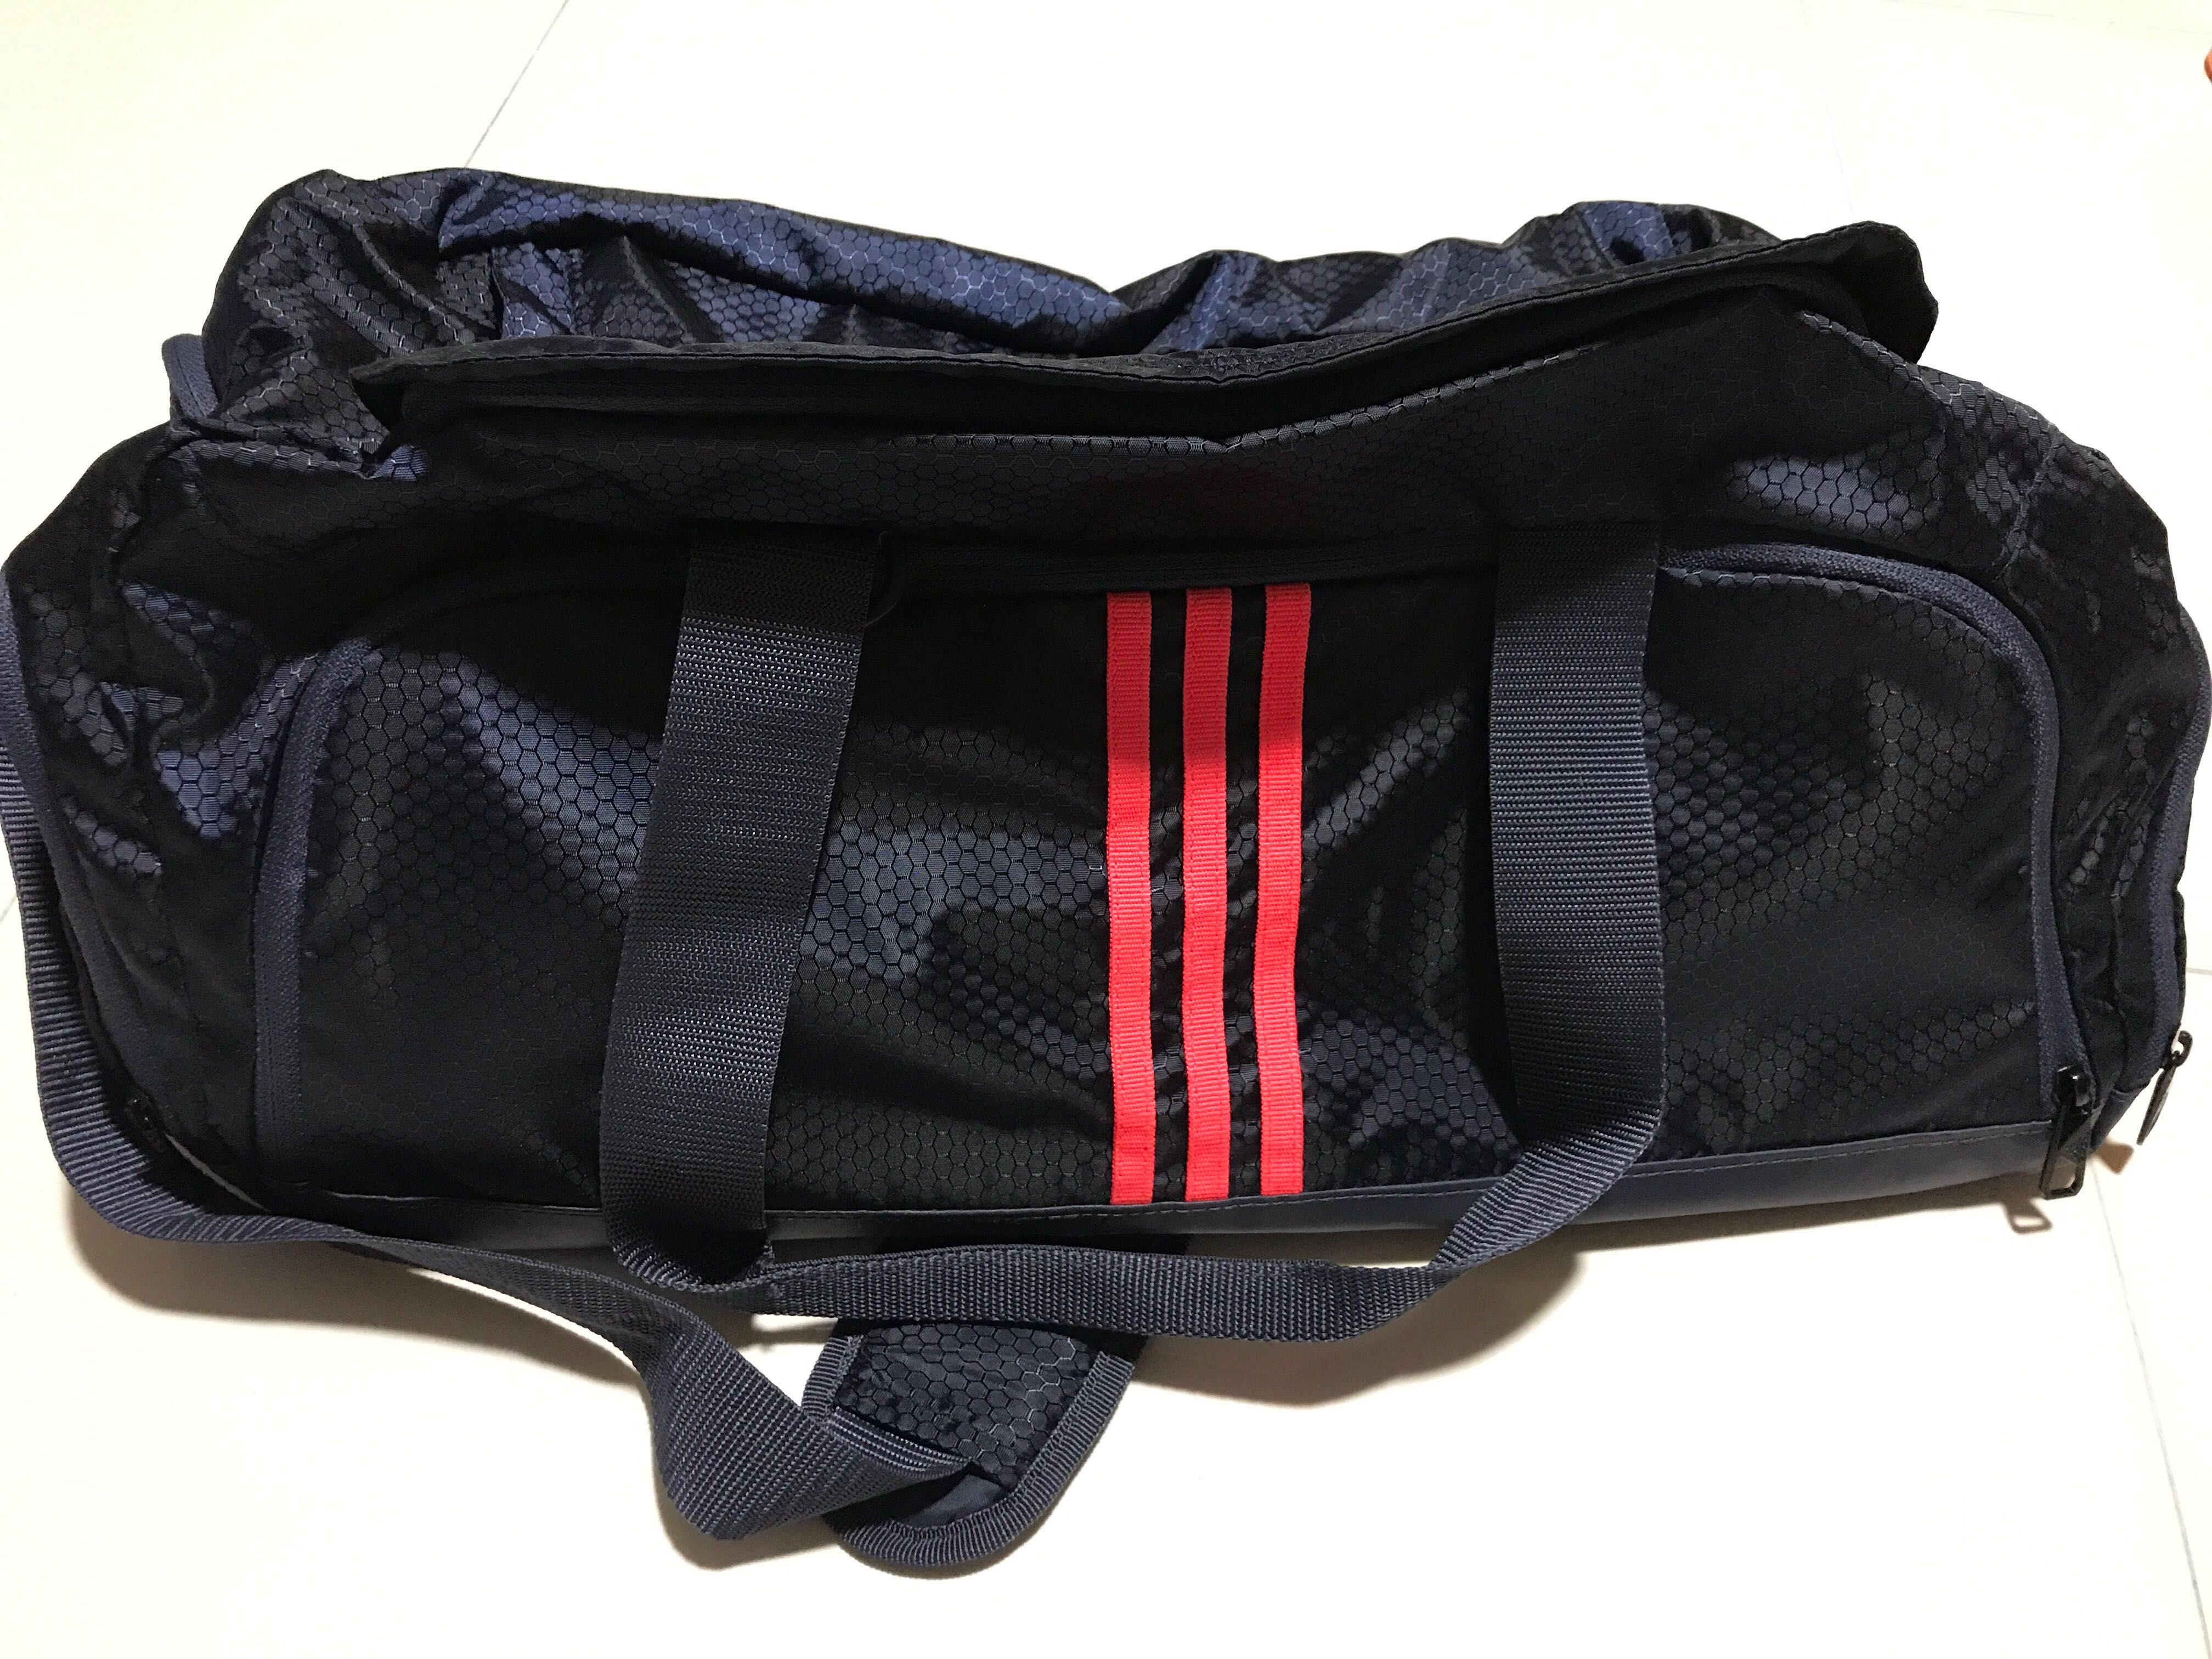 2edbebd915 Adidas Duffel Gym Bag (New)